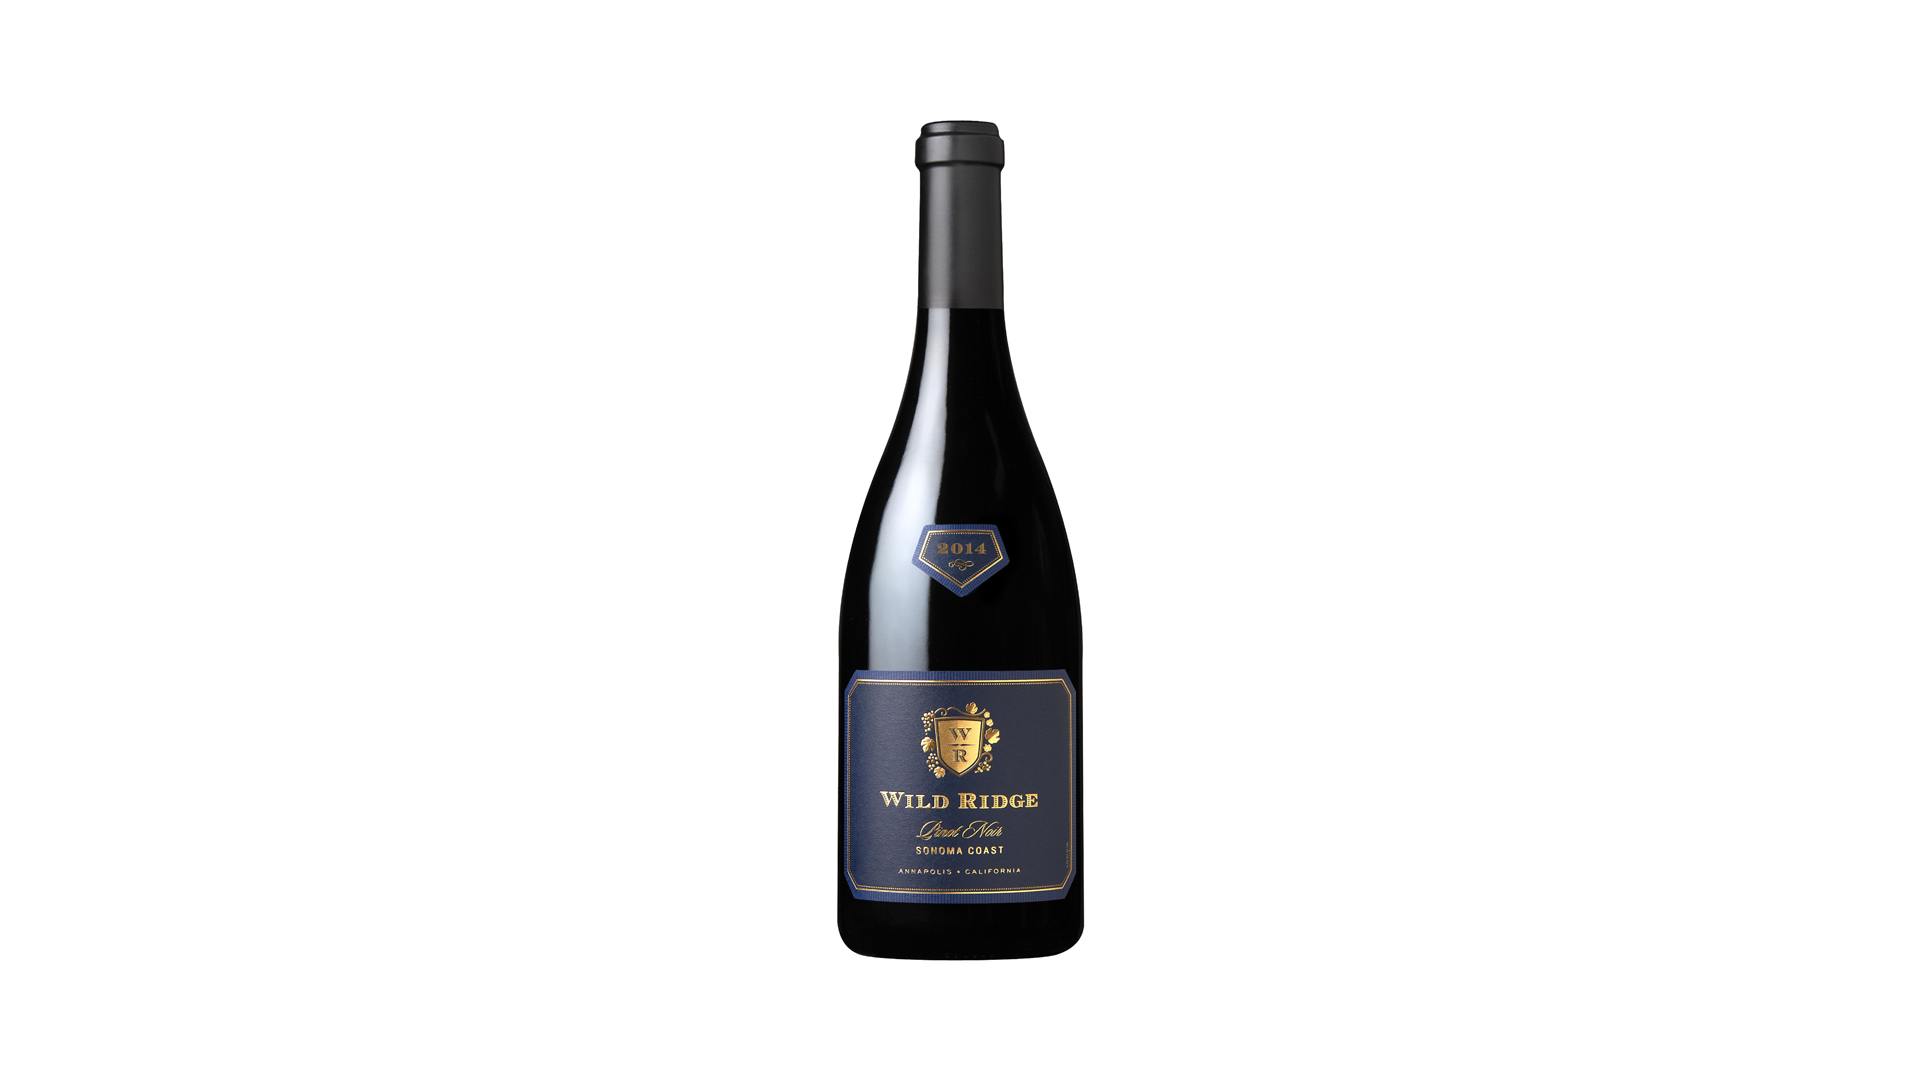 Wild Ridge Pinot Noir 2014 is one of 5 delightful wines special offers